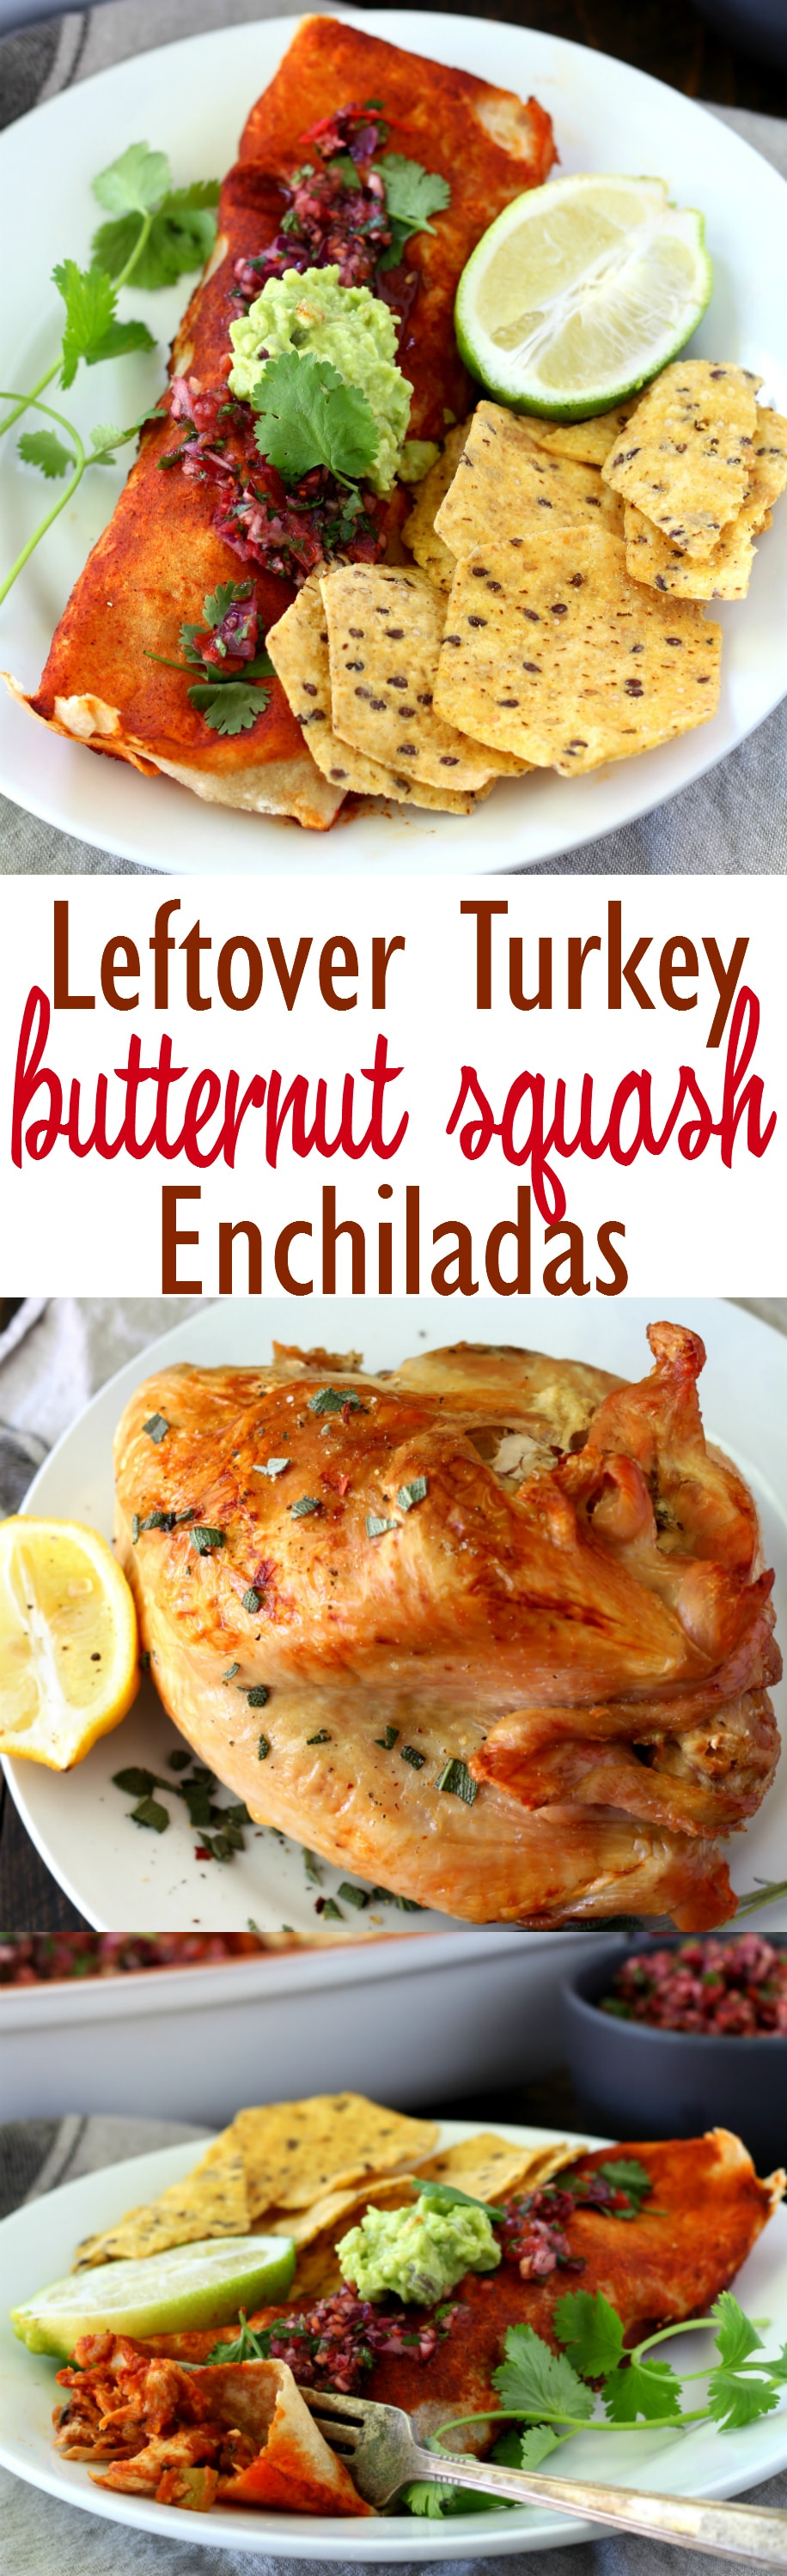 Leftover turkey recipes enchiladas chicken